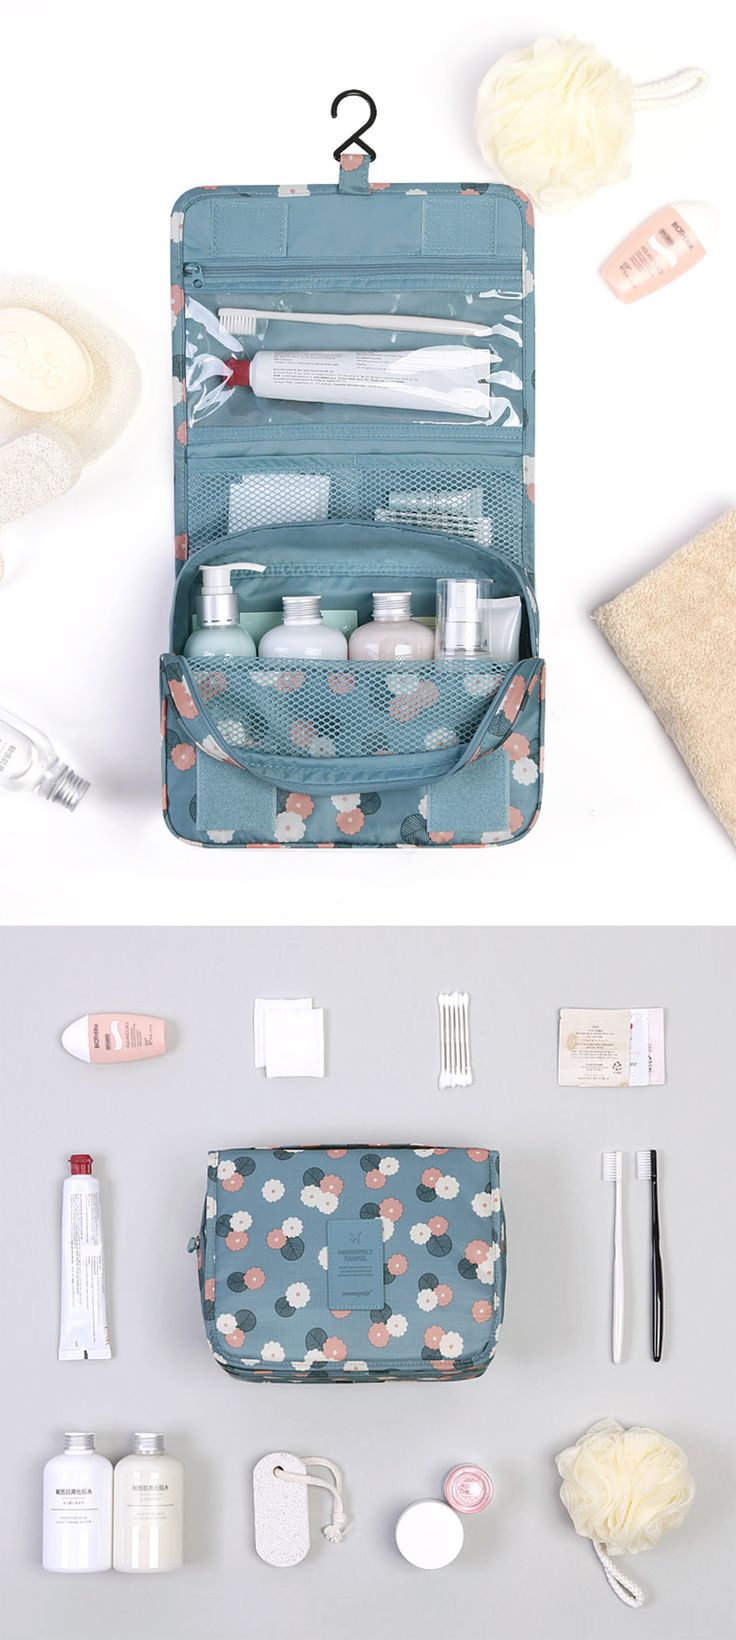 This Pattern Toiletry Pouch is both cute and functional equipped with 1 zippered PVC pocket, 2 mesh pockets, 1 main compartment and 1 back pocket. Store as much as you can fit, including wet items, as this pouch is made of polyester and non hazardous PVC making it waterproof and resistant to tearing and ripping.  The pocket on the back is perfect for easily accessible items such as magazines or electronic devices. Use this versatile item as a baby pouch, travel pouch, a makeup pouch and…